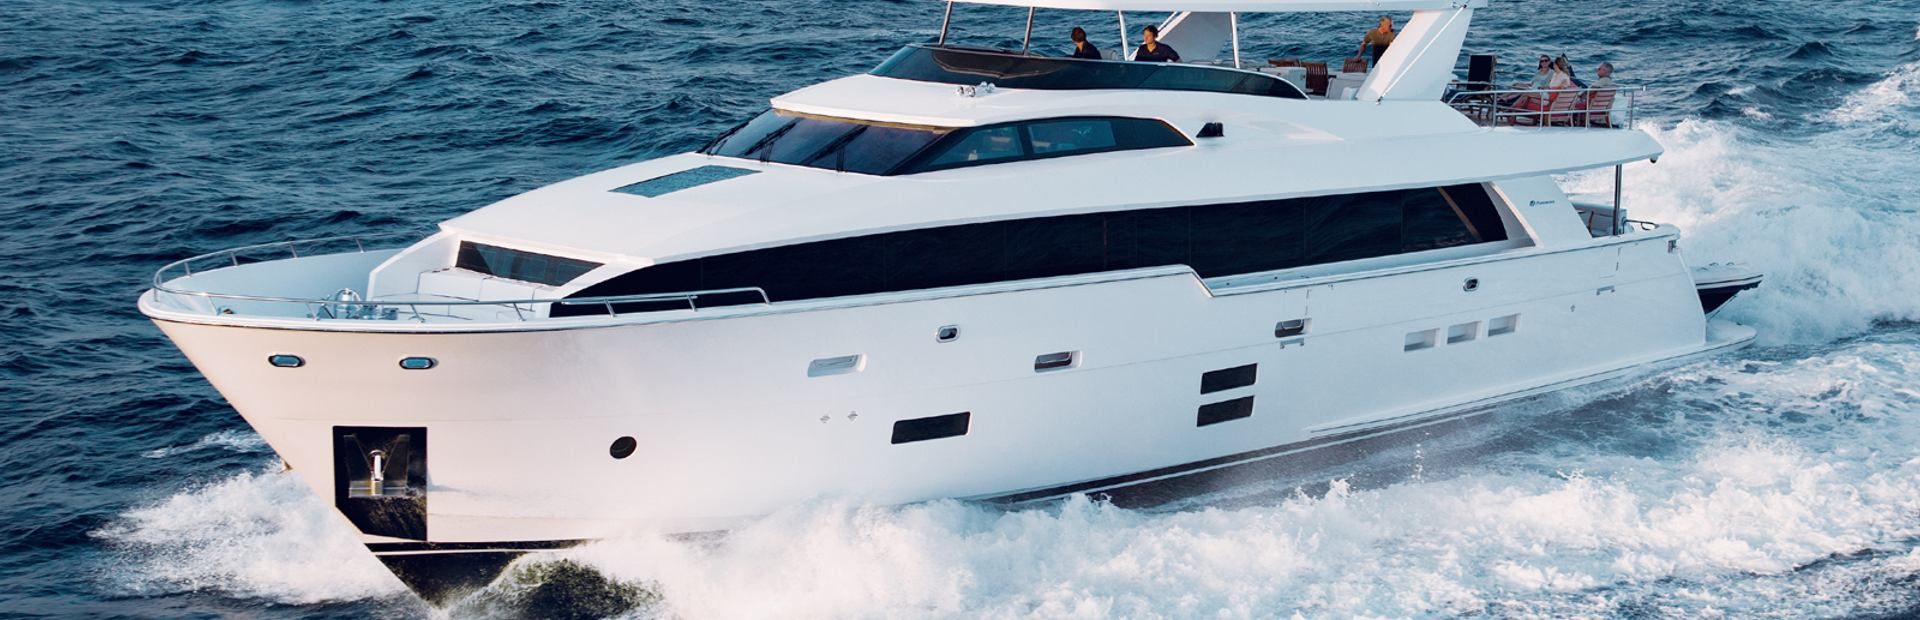 Hatteras 100 Raised Pilothouse Yacht Charter